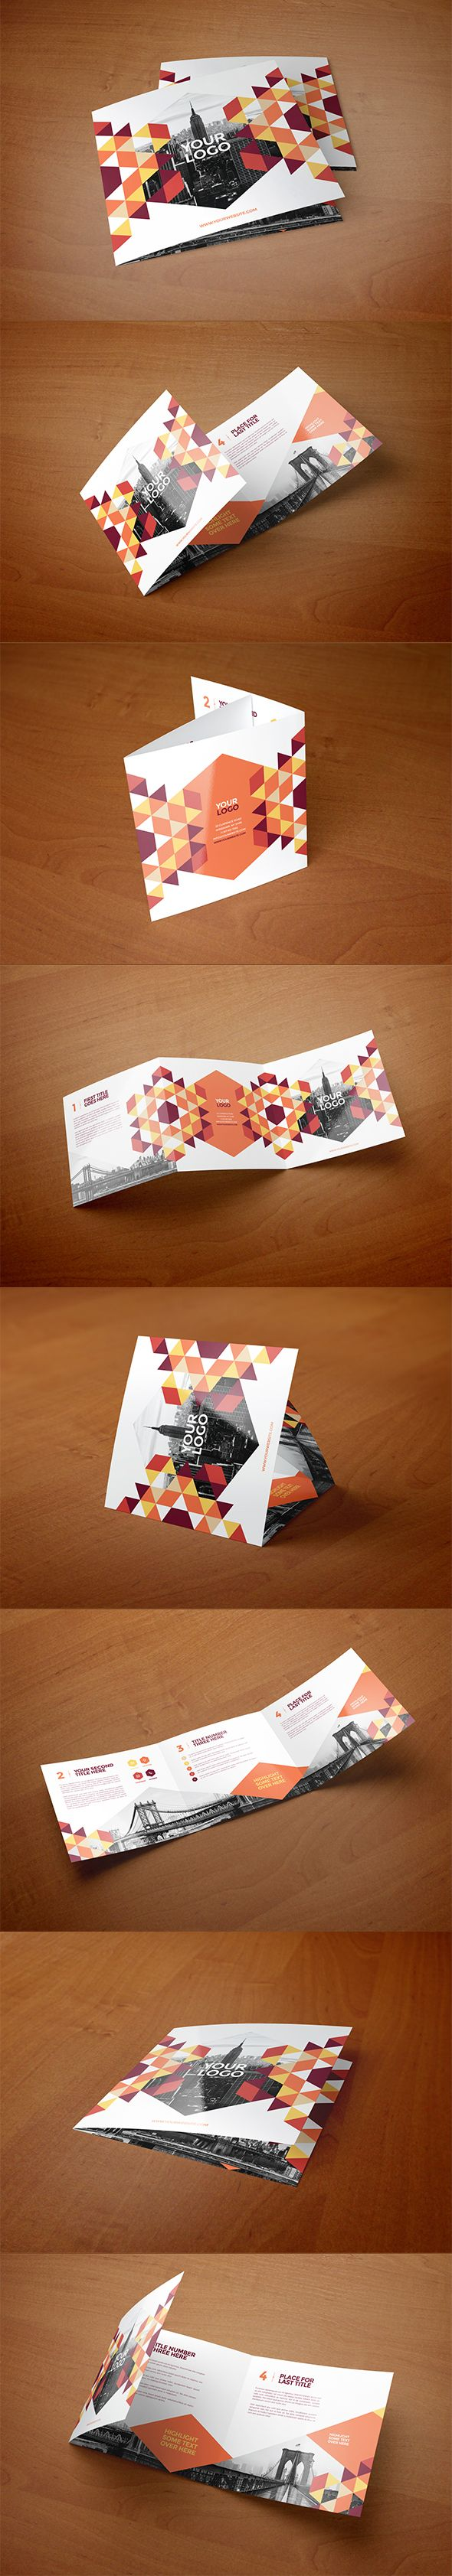 Square Modern Red Pattern Trifold. Download here: http://graphicriver.net/item/square-modern-red-pattern-trifold/11871464?ref=abradesign #trifold #brochure #design #layout